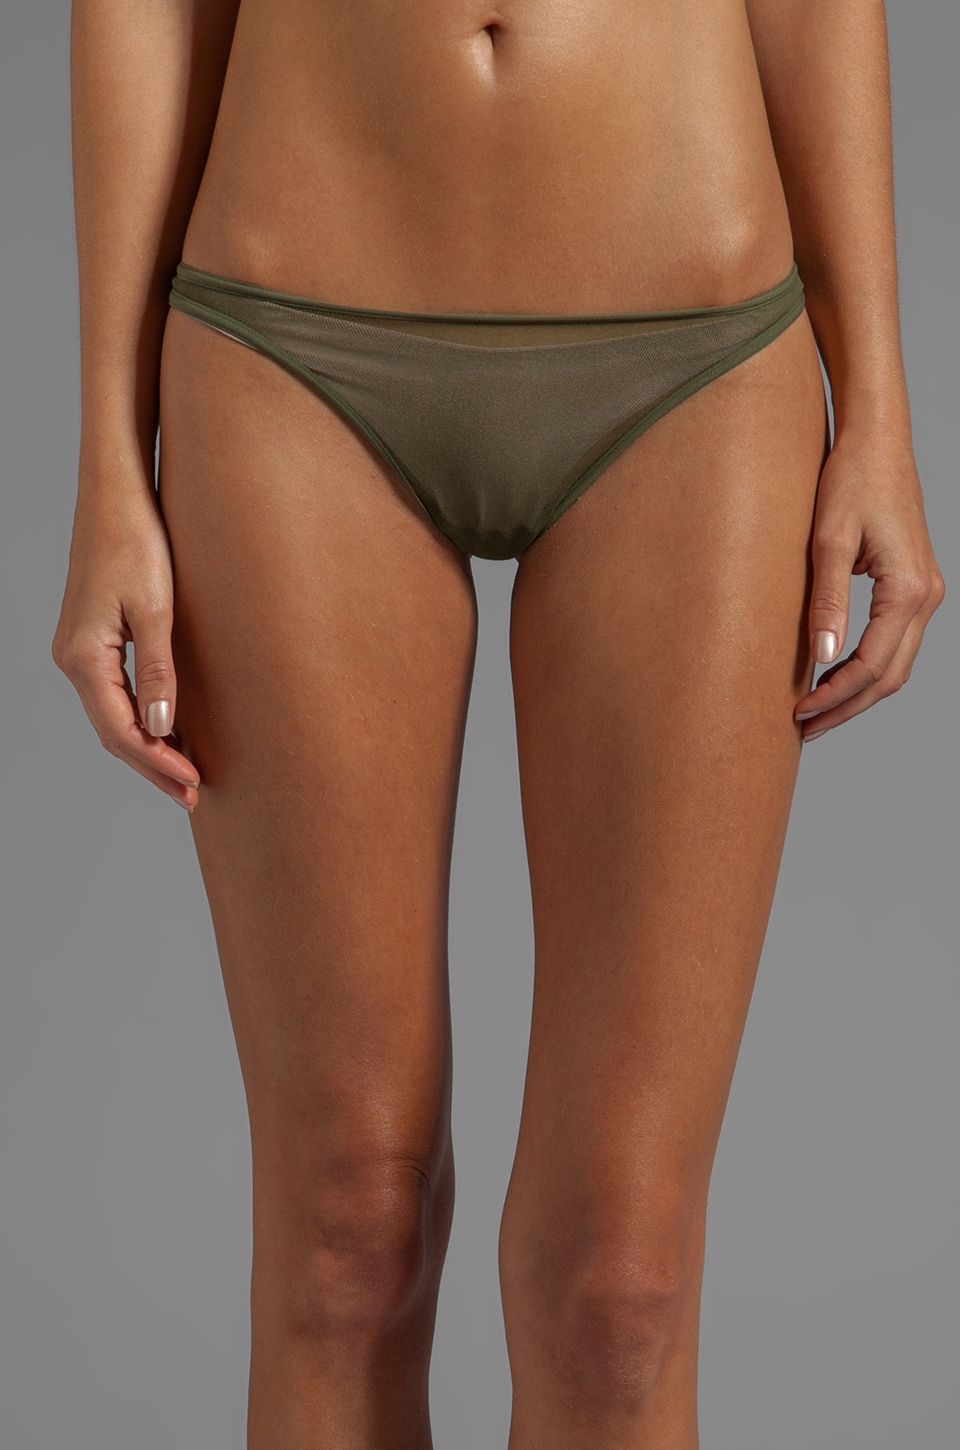 Cosabella Soire Classic Thong in Cypress